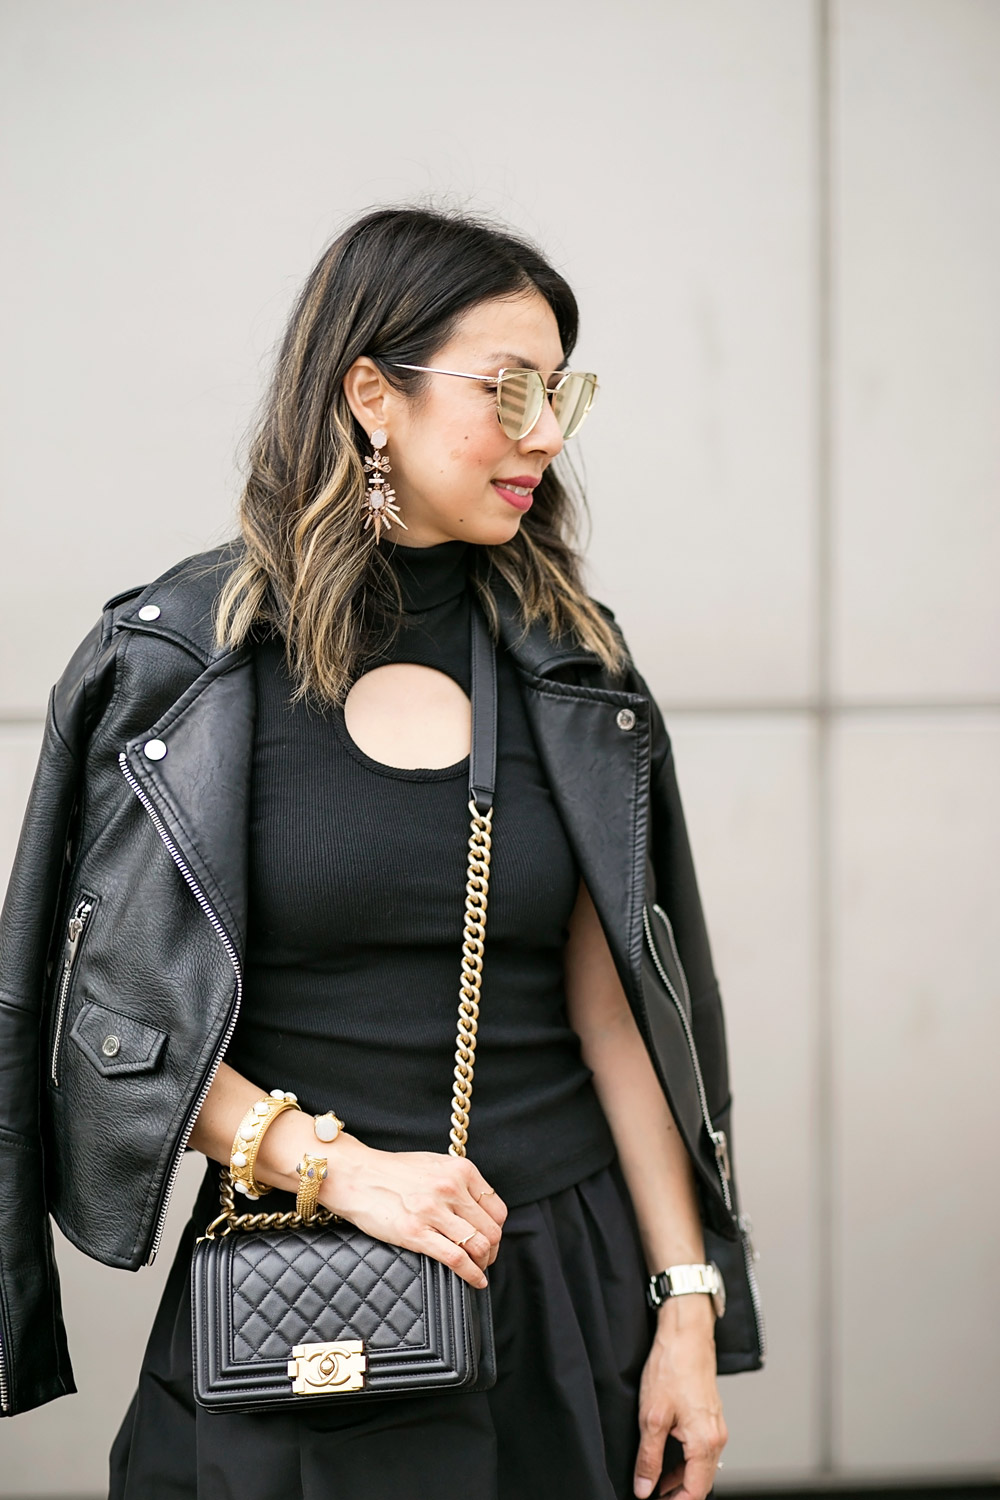 kendra scott isadora earrings, black keyhole turtleneck, moto jacket